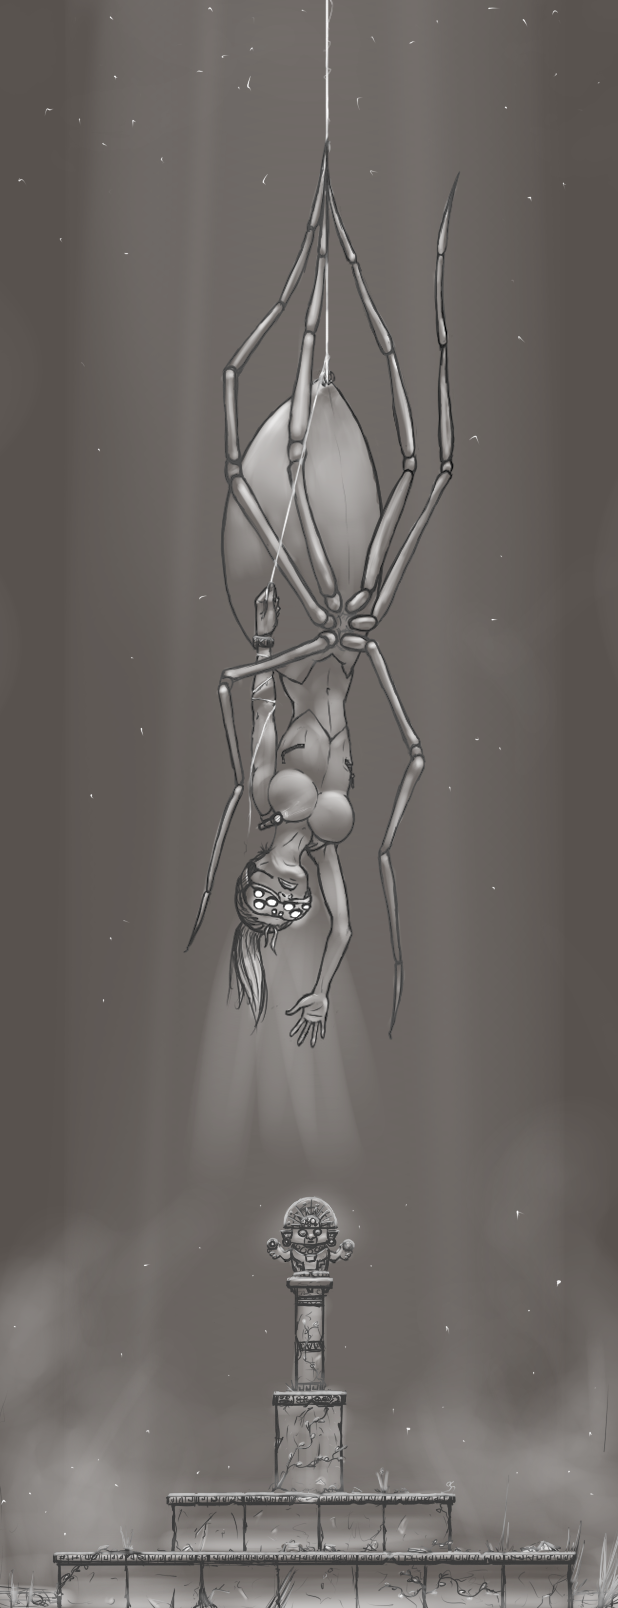 Monster Girl Challenge day 6 - Spider girl. Inspiration from Indiana Jones and Tomb Raider, with a bit of Splinter Cell on the side.